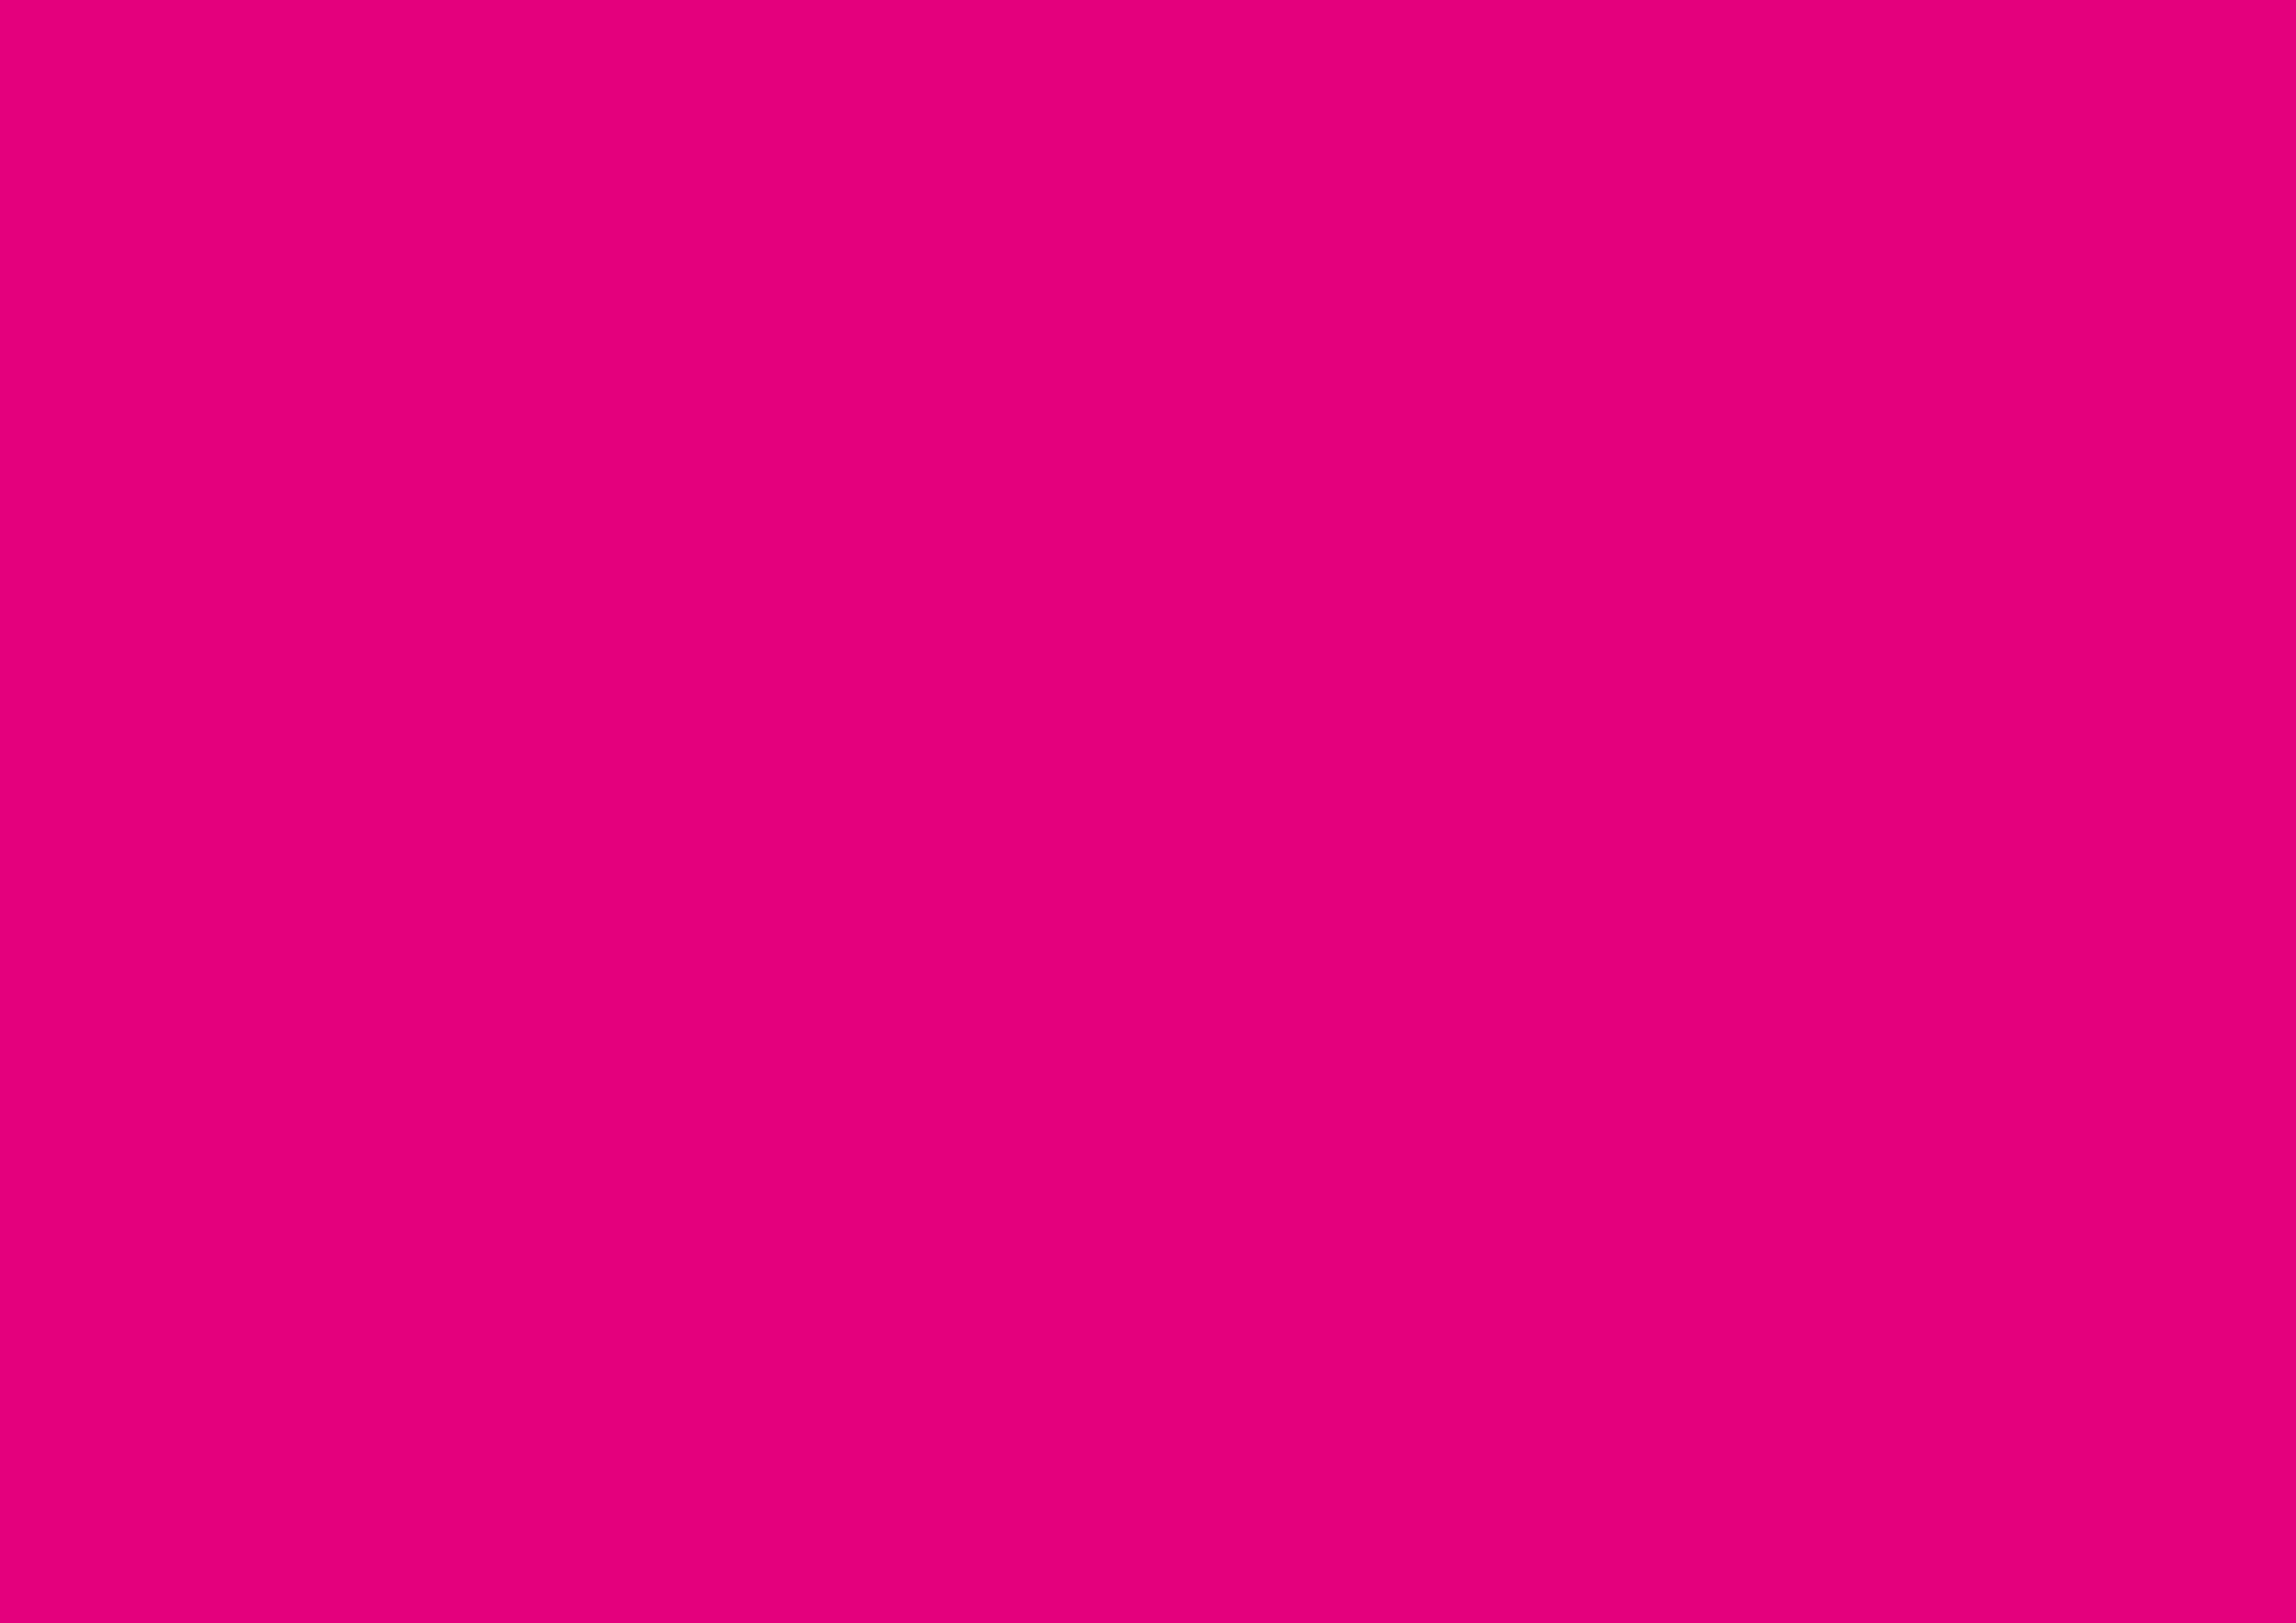 3508x2480 Mexican Pink Solid Color Background